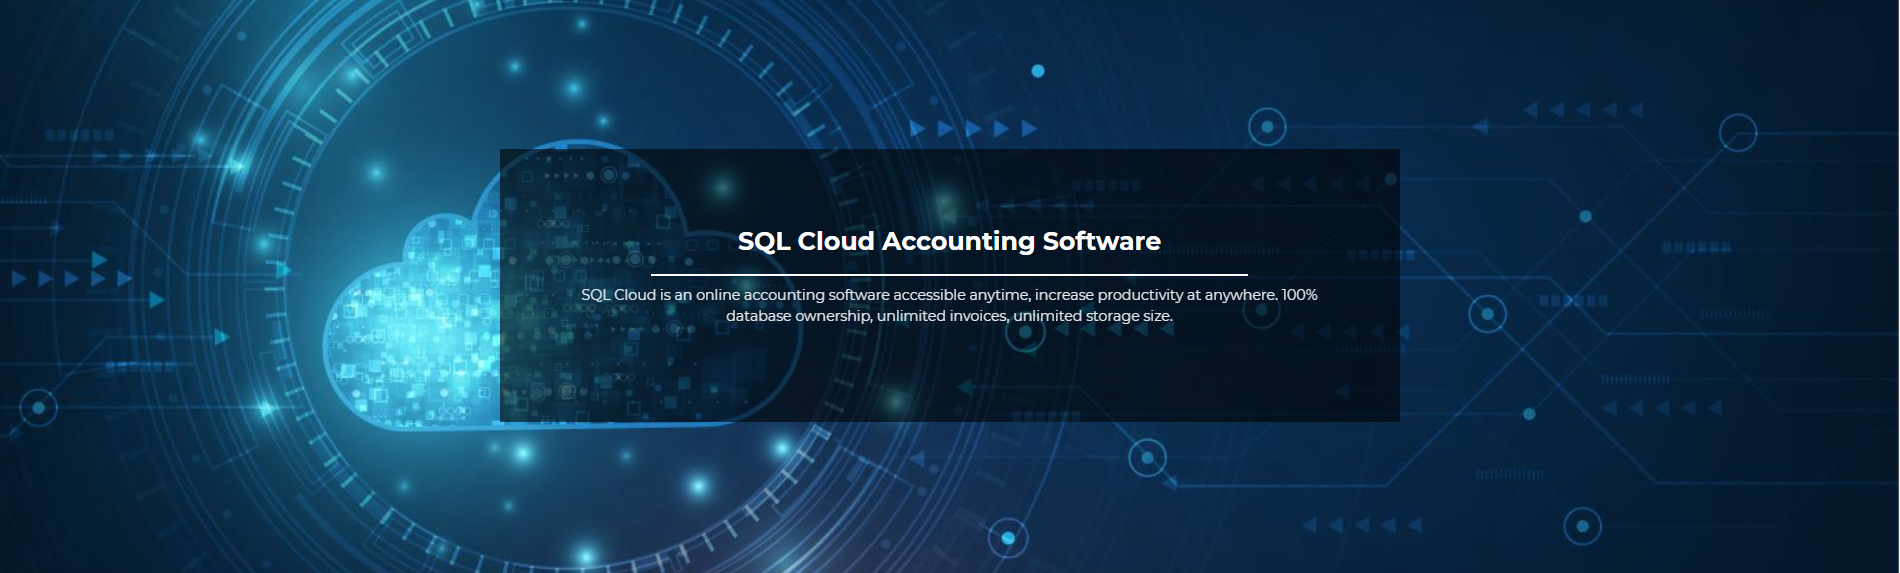 sql-cloud-accounting.png